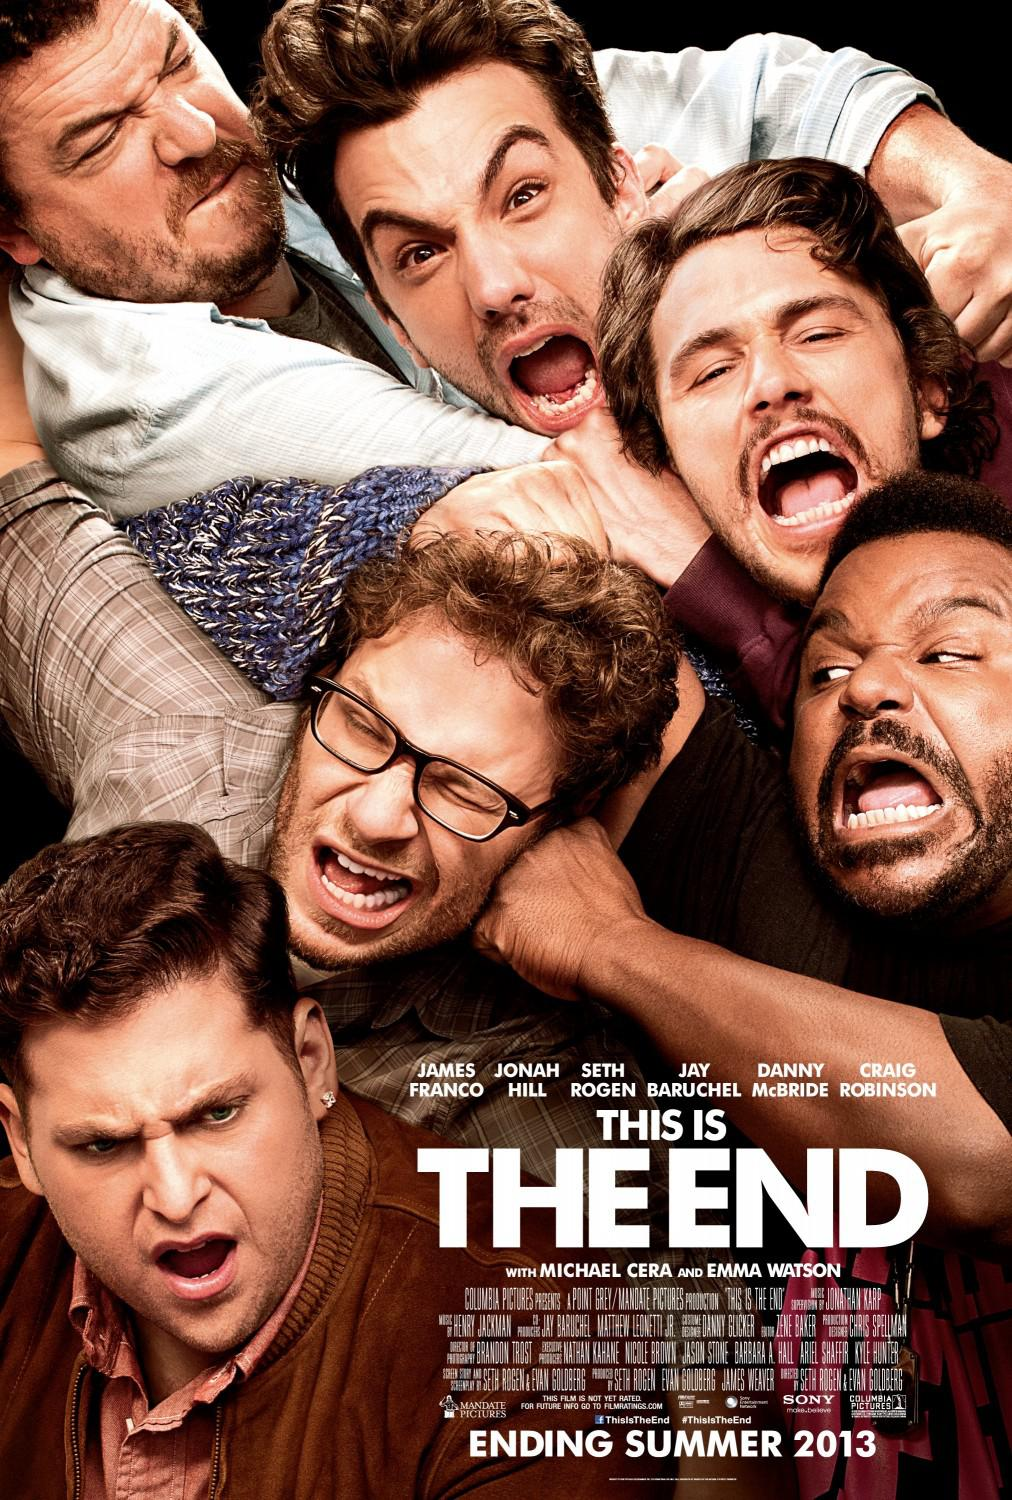 This is the end - Questa è la fine - James Franco - Jonah Hill - Seth Rogen - Jay Baruchel - Danny McBride - Craig Robinson